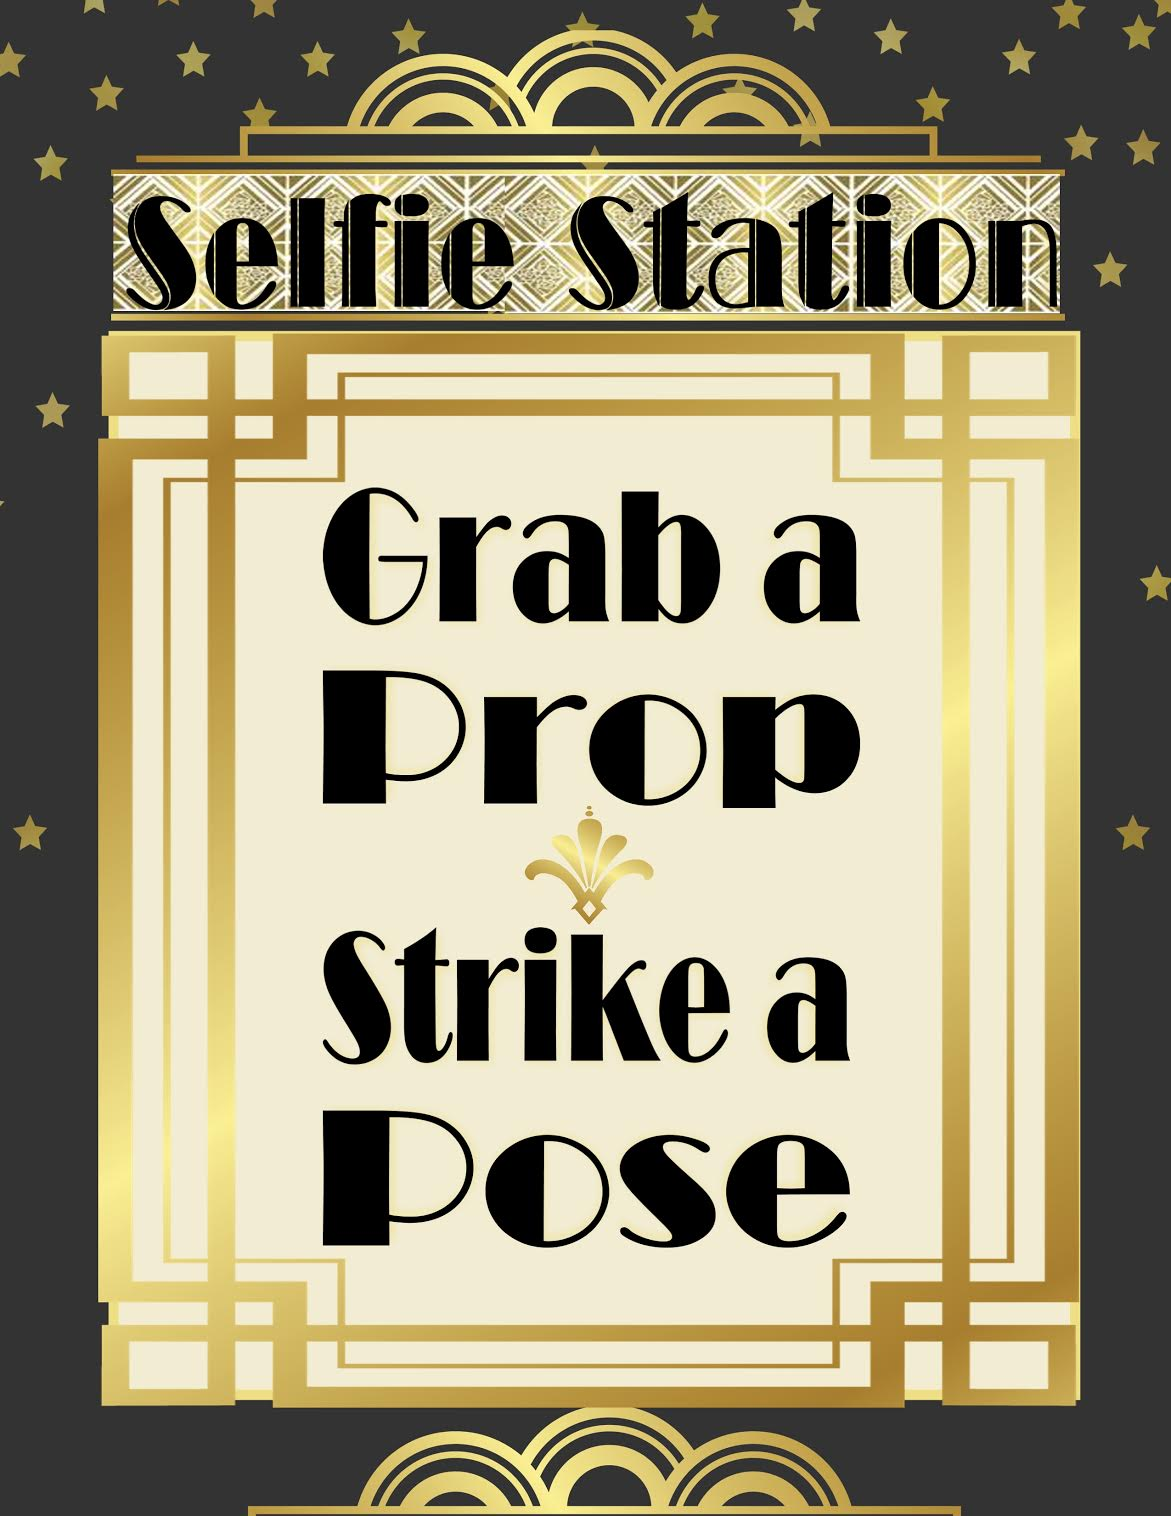 photo regarding Selfie Station Sign Free Printable known as Puttin Upon The Ritz: Roaring 20s Picture Booth Printables